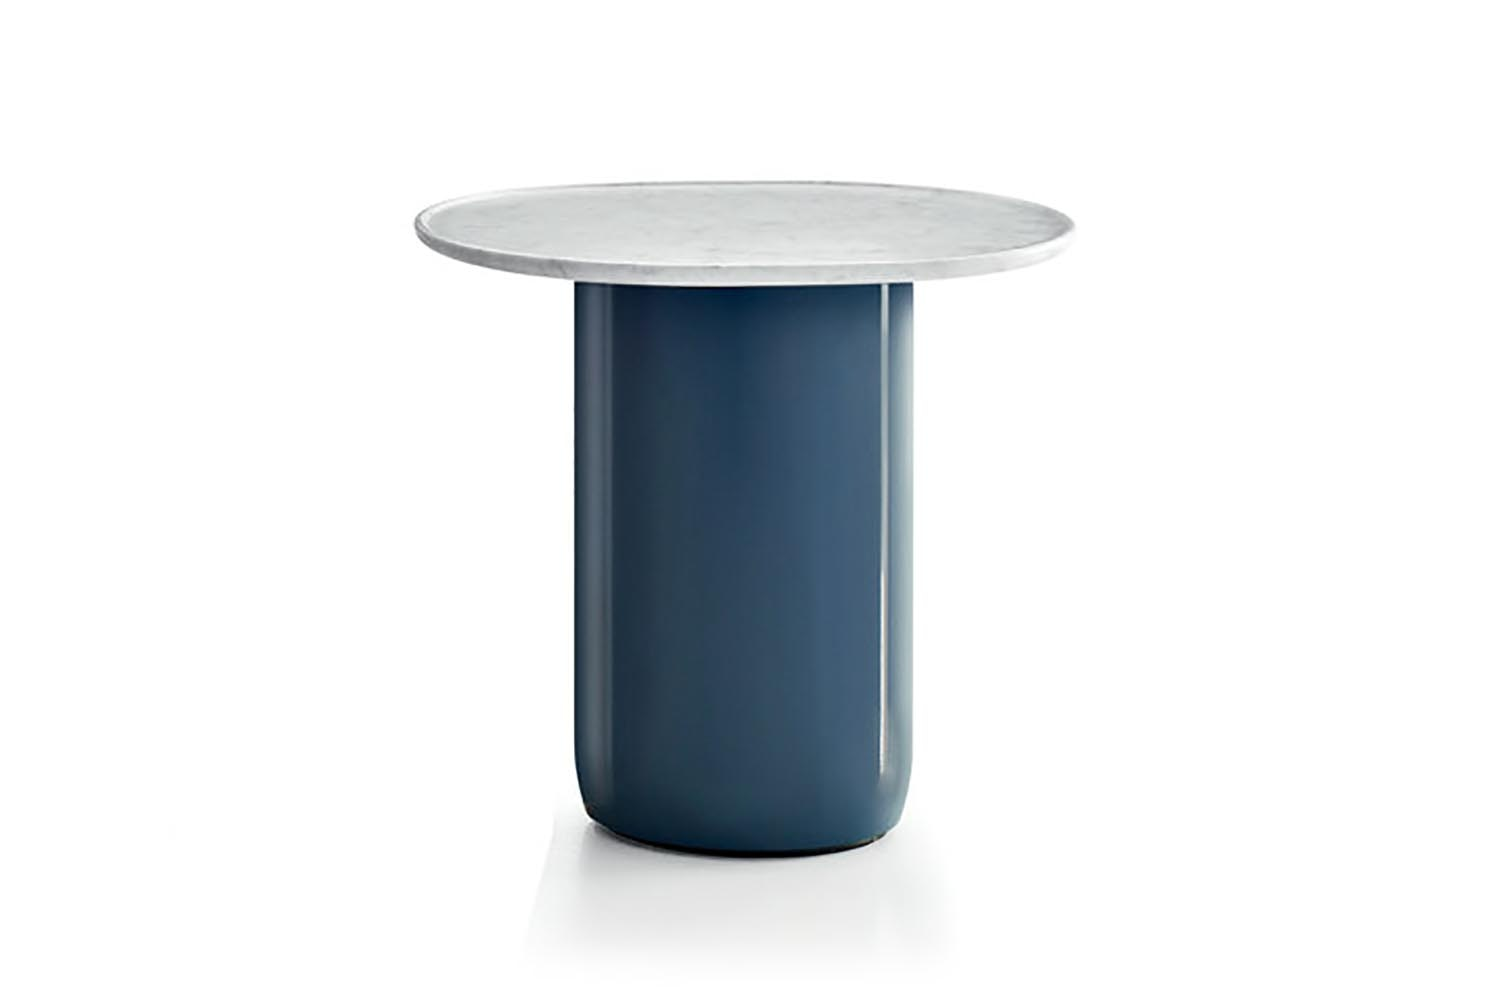 Button Small Table by Edward Barber & Jay Osgerby for B&B Italia